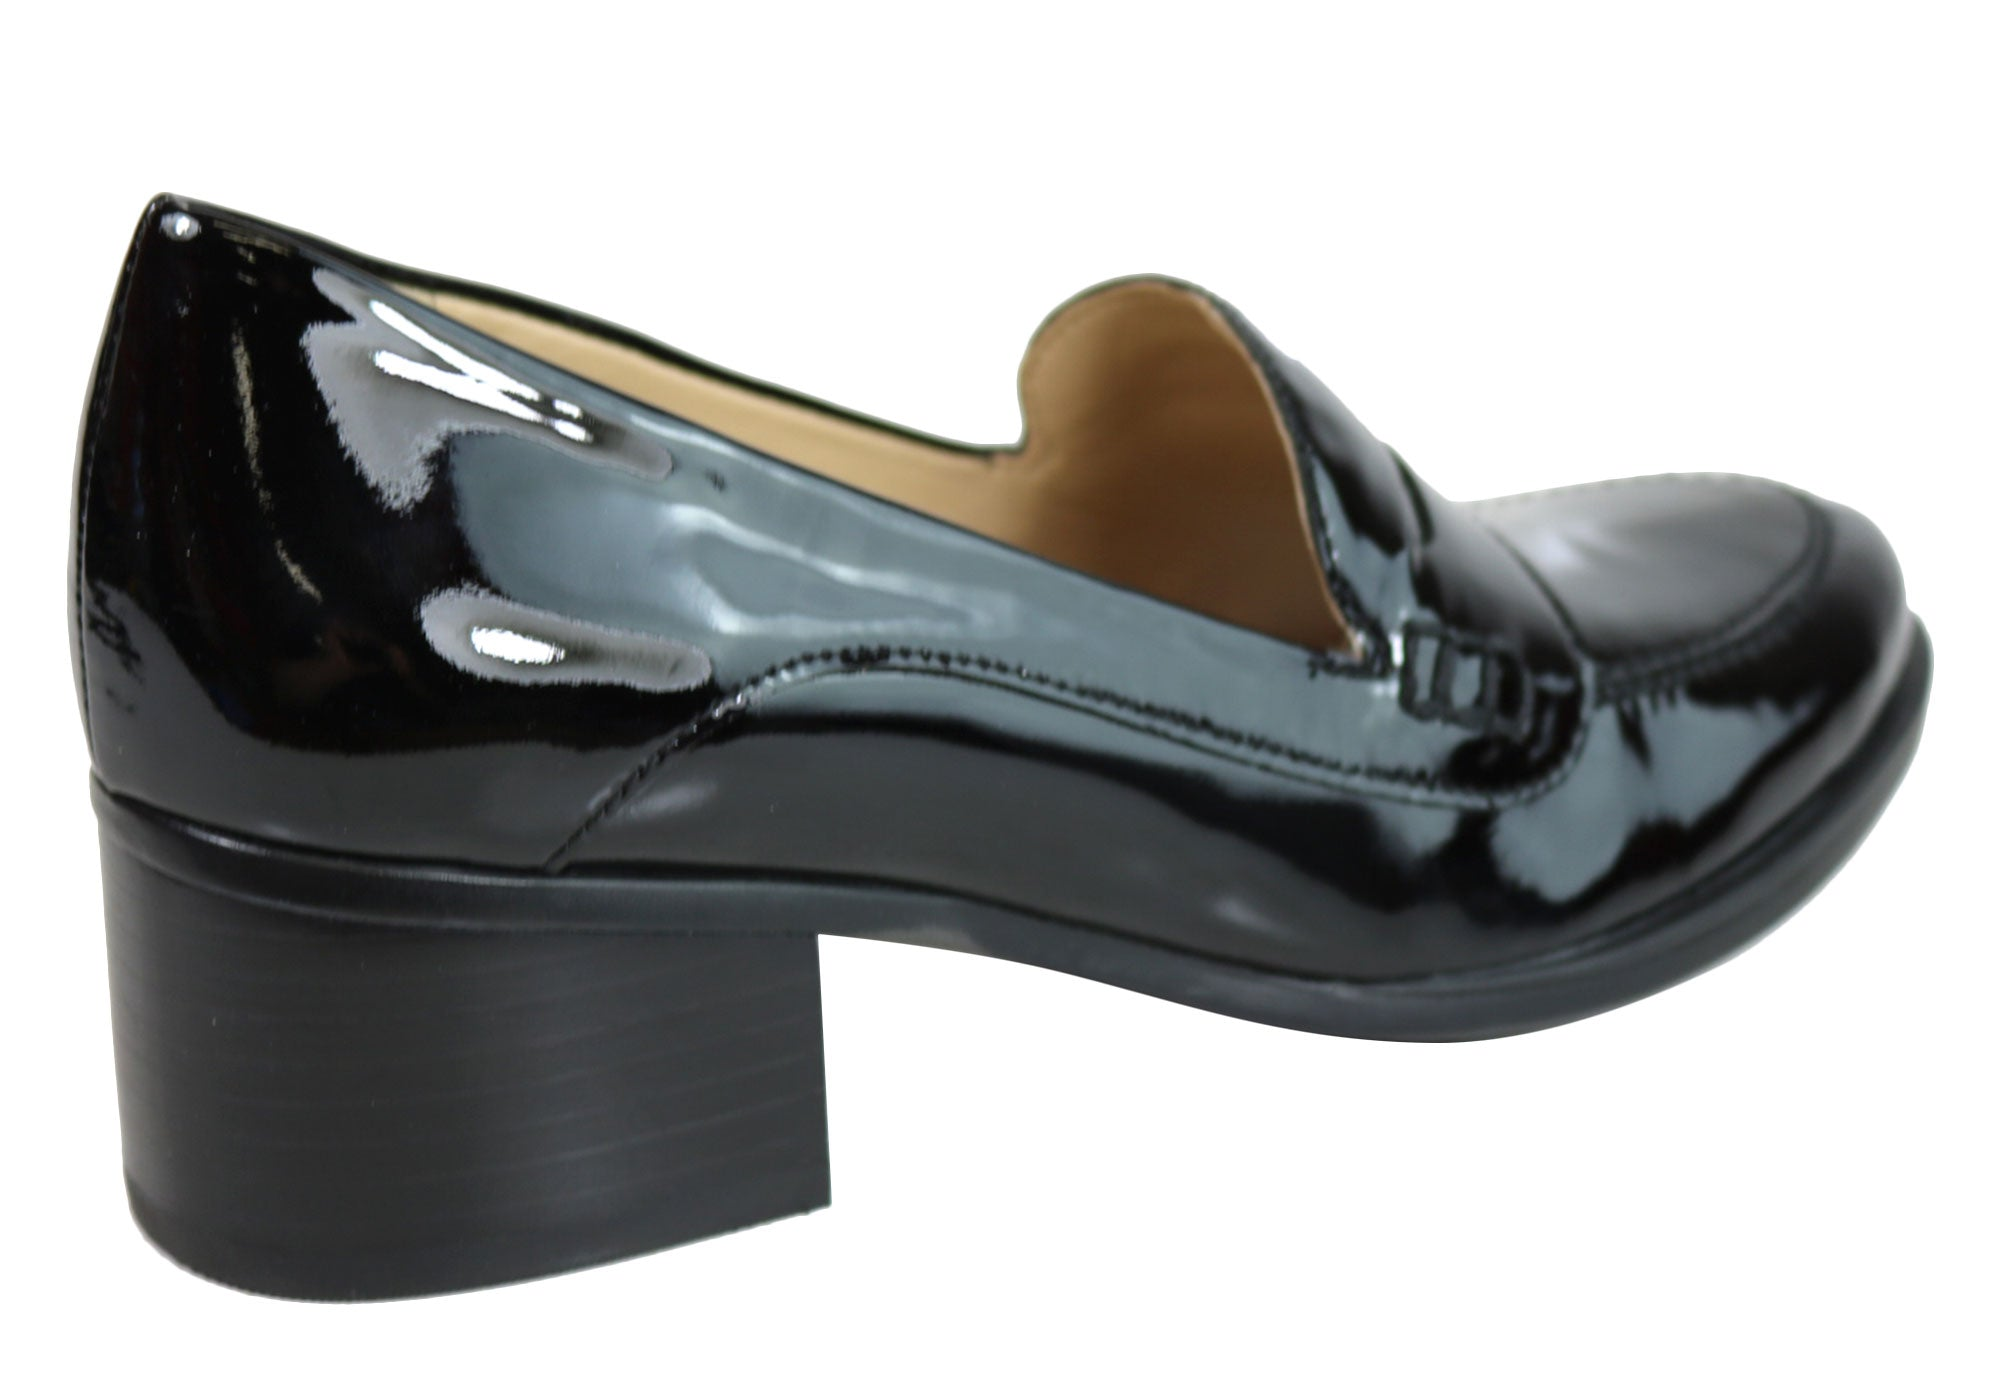 1416f66c1f9 Home Naturalizer Dinah Womens Mid Heel Patent Leather Loafer Comfort Pumps.  Black Patent  Black Patent  Black Patent  Black Patent ...